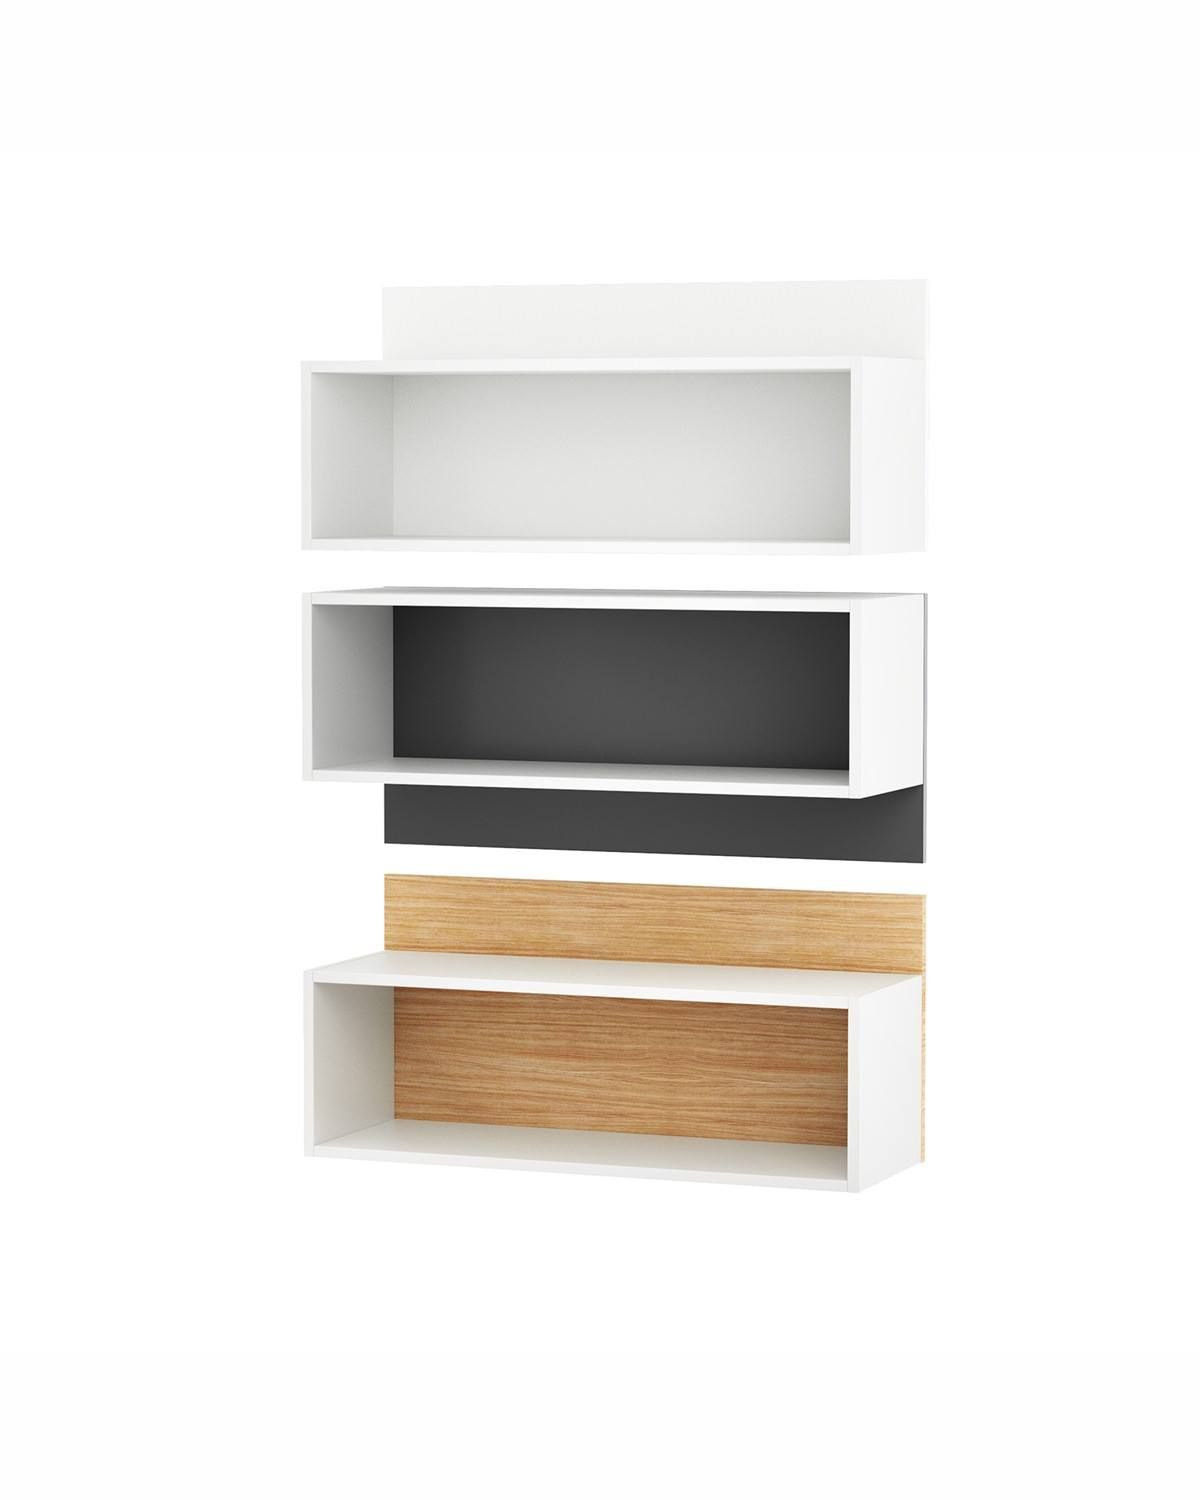 practical multifunction furniture. In The CLICK Collection Shelves Are Not Just Practical Functional And Useful Furniture Multifunction